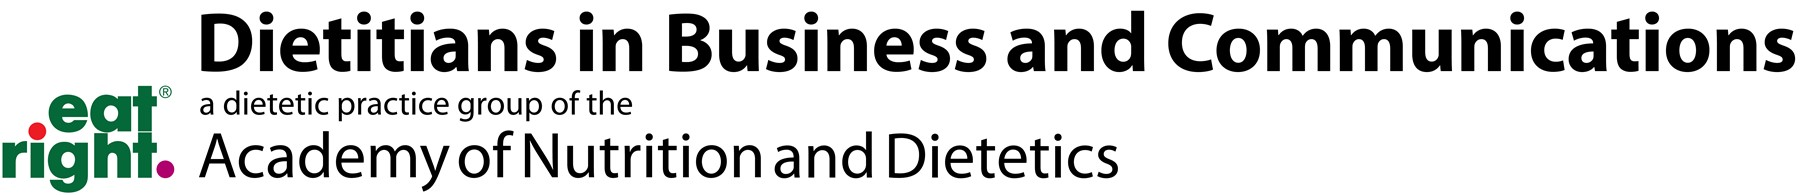 TasteOverTime - Jacqueline B Marcus - Media - Articles - Dieticians in Business